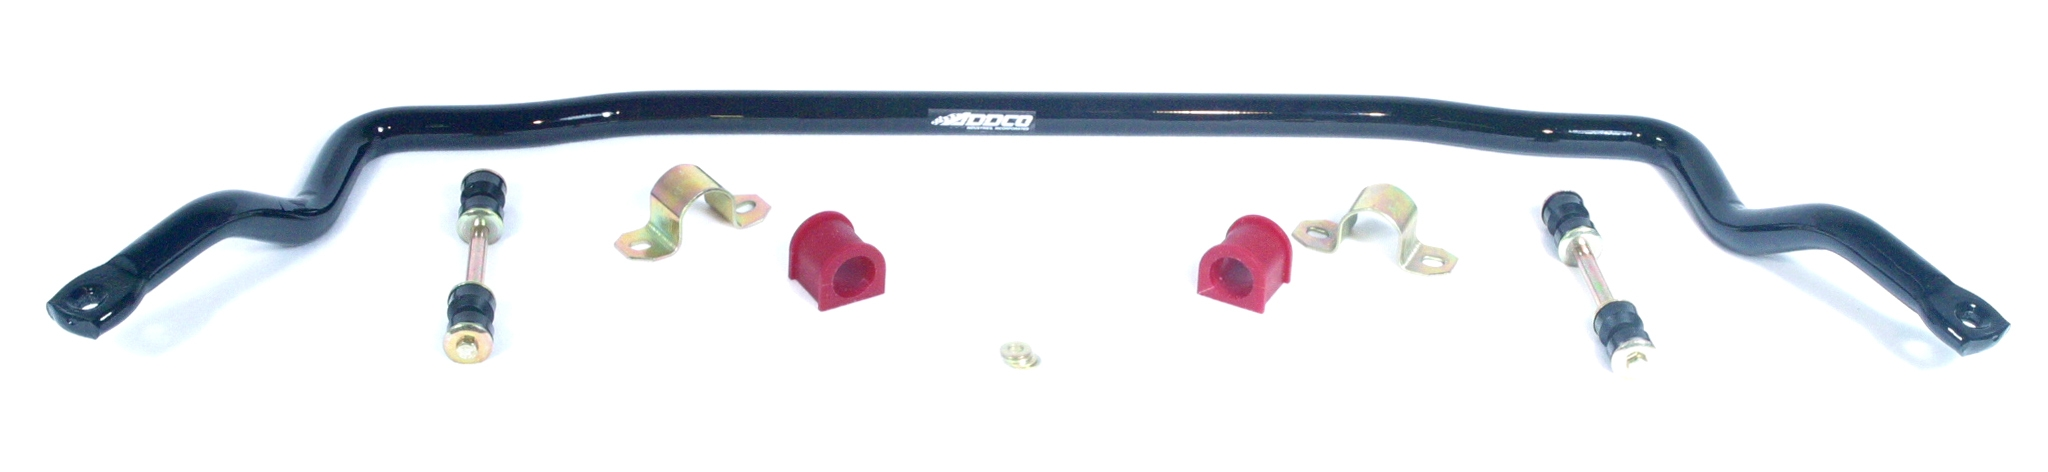 709 Addco Stabilizer Bar 1-1/4 Inch Diameter